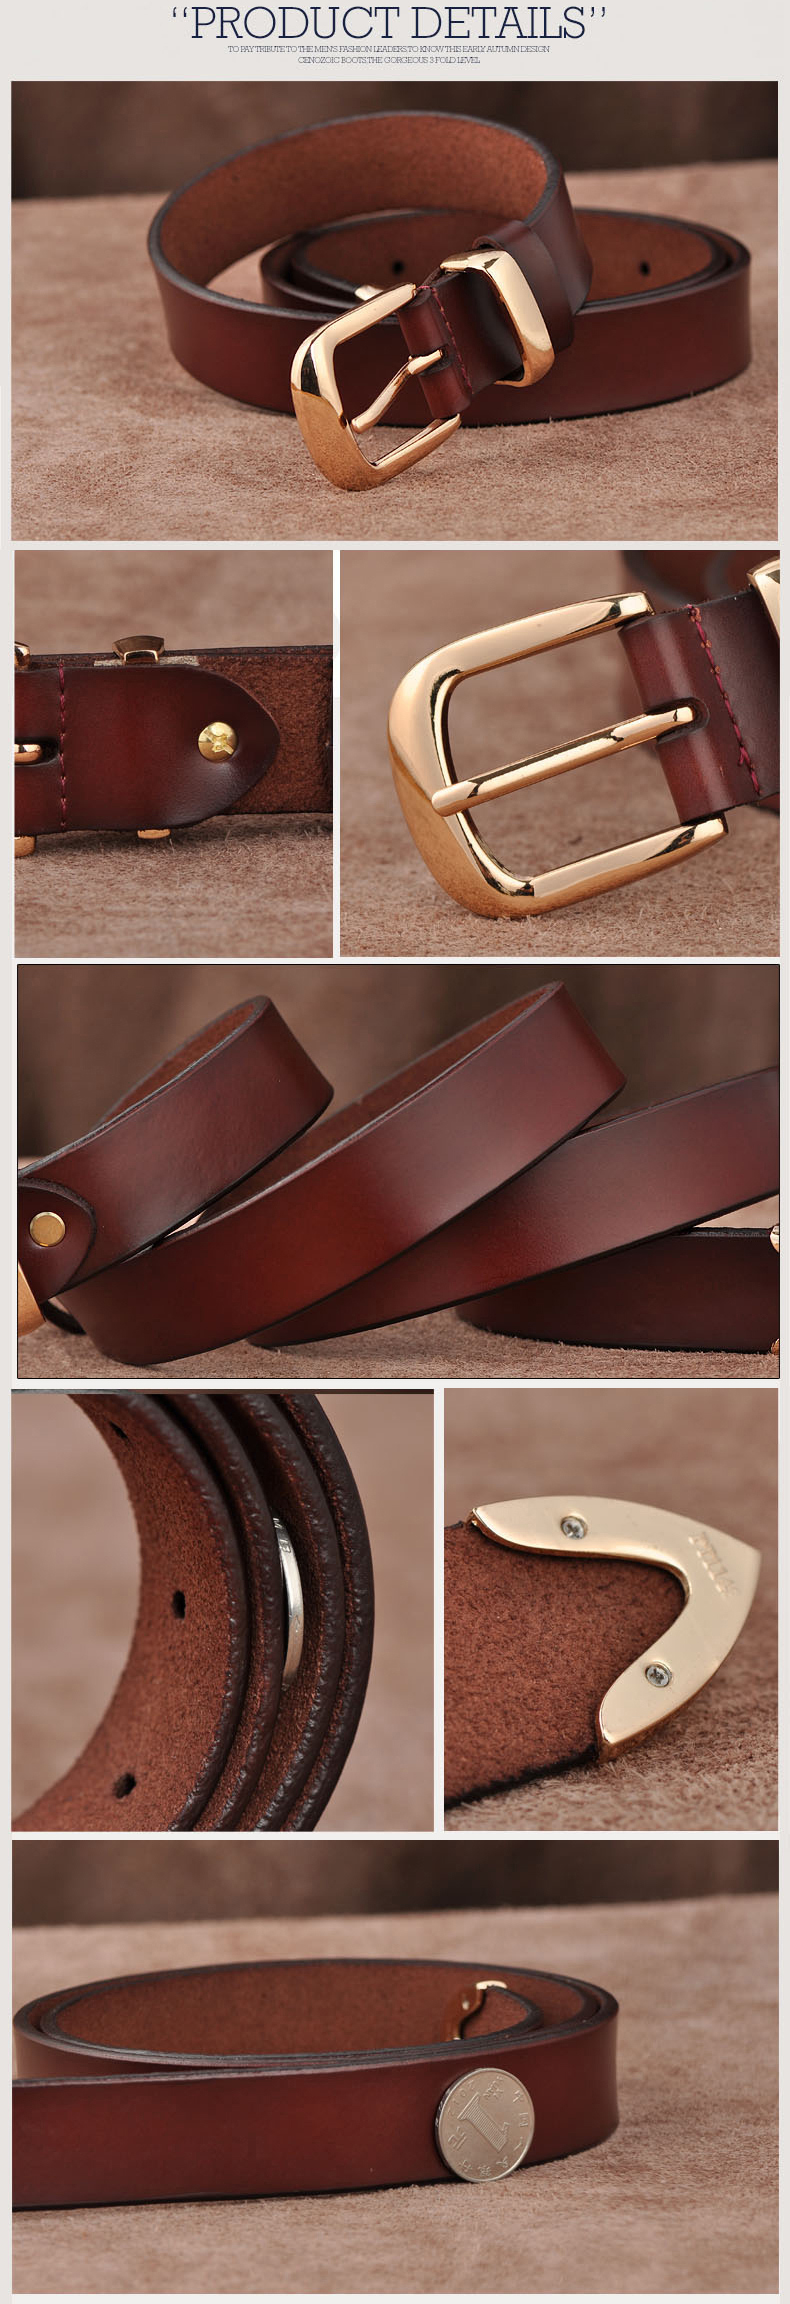 Free shipping Love strap Women genuine leather fashion all-match belt women's cowhide casual pants belt 16